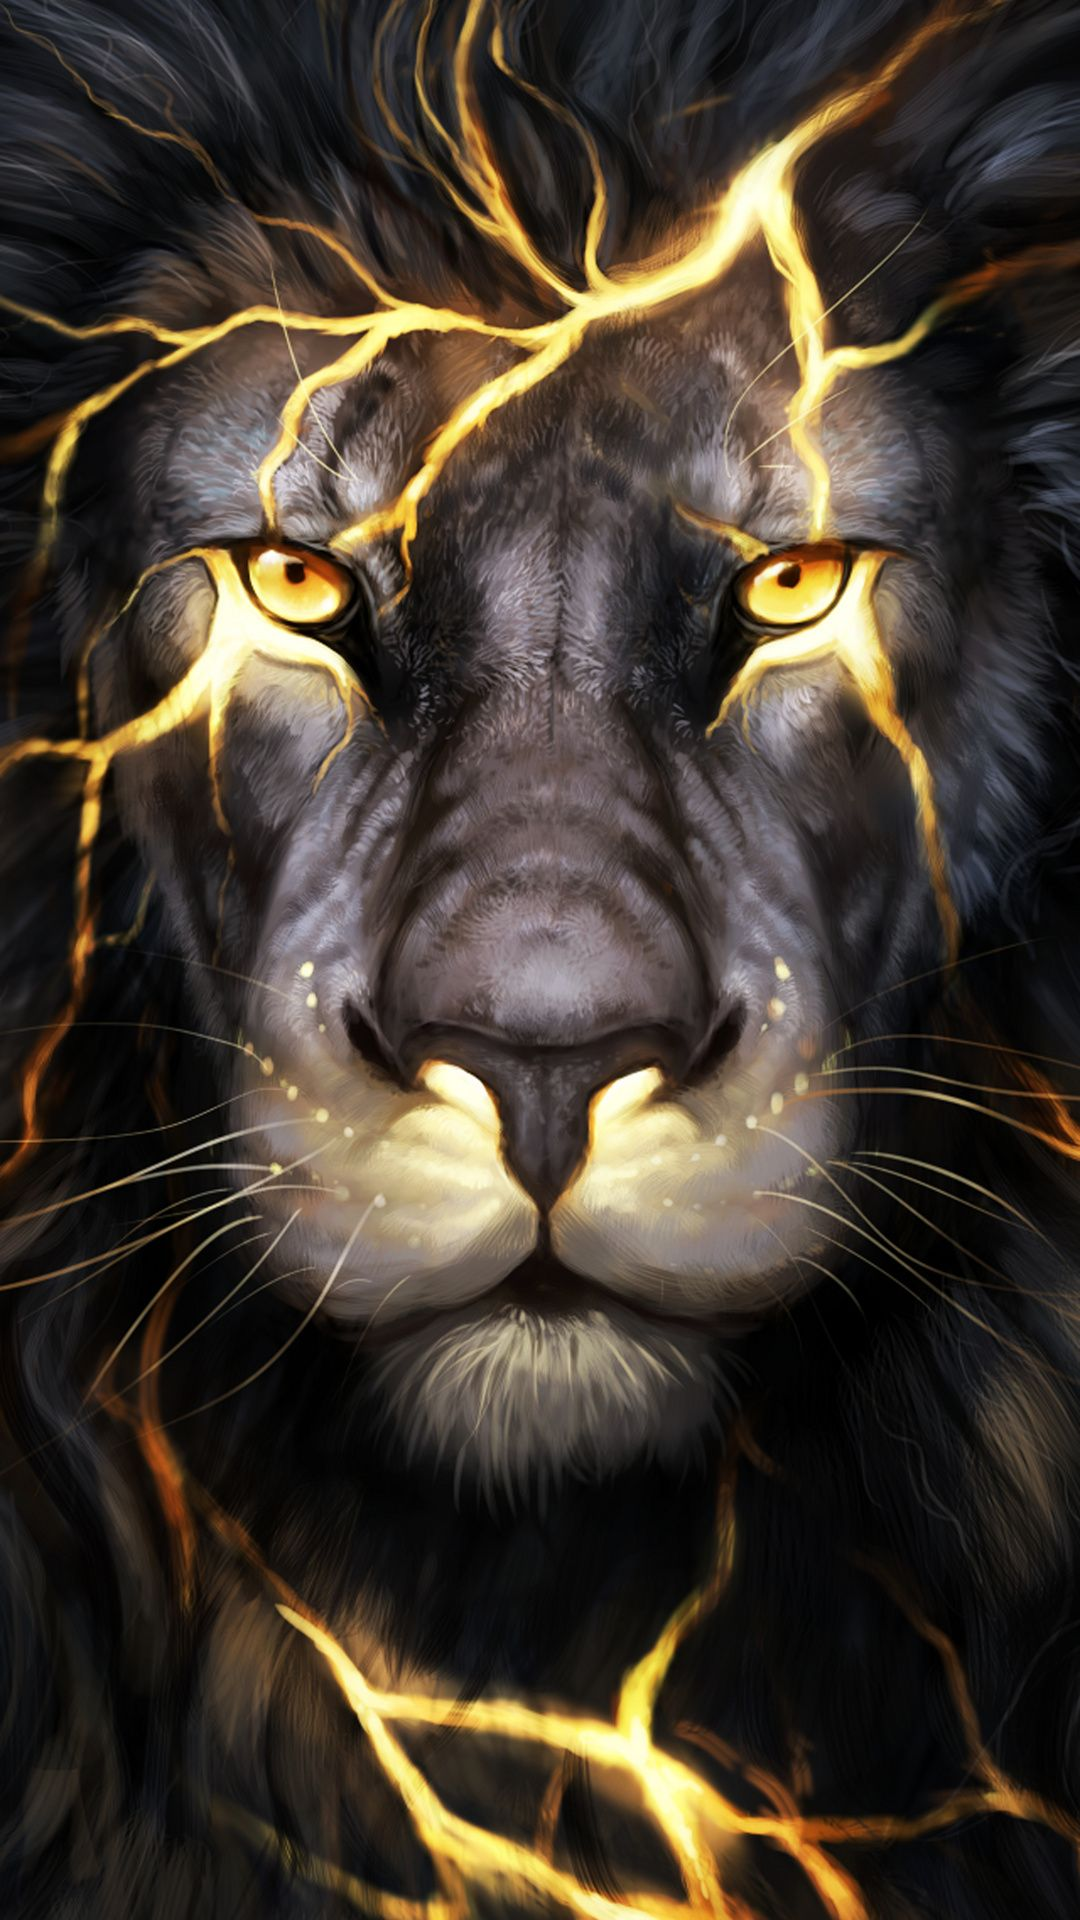 Just A Cool 3d Lion Graphic In 2020 Lion Wallpaper 3d Wallpaper